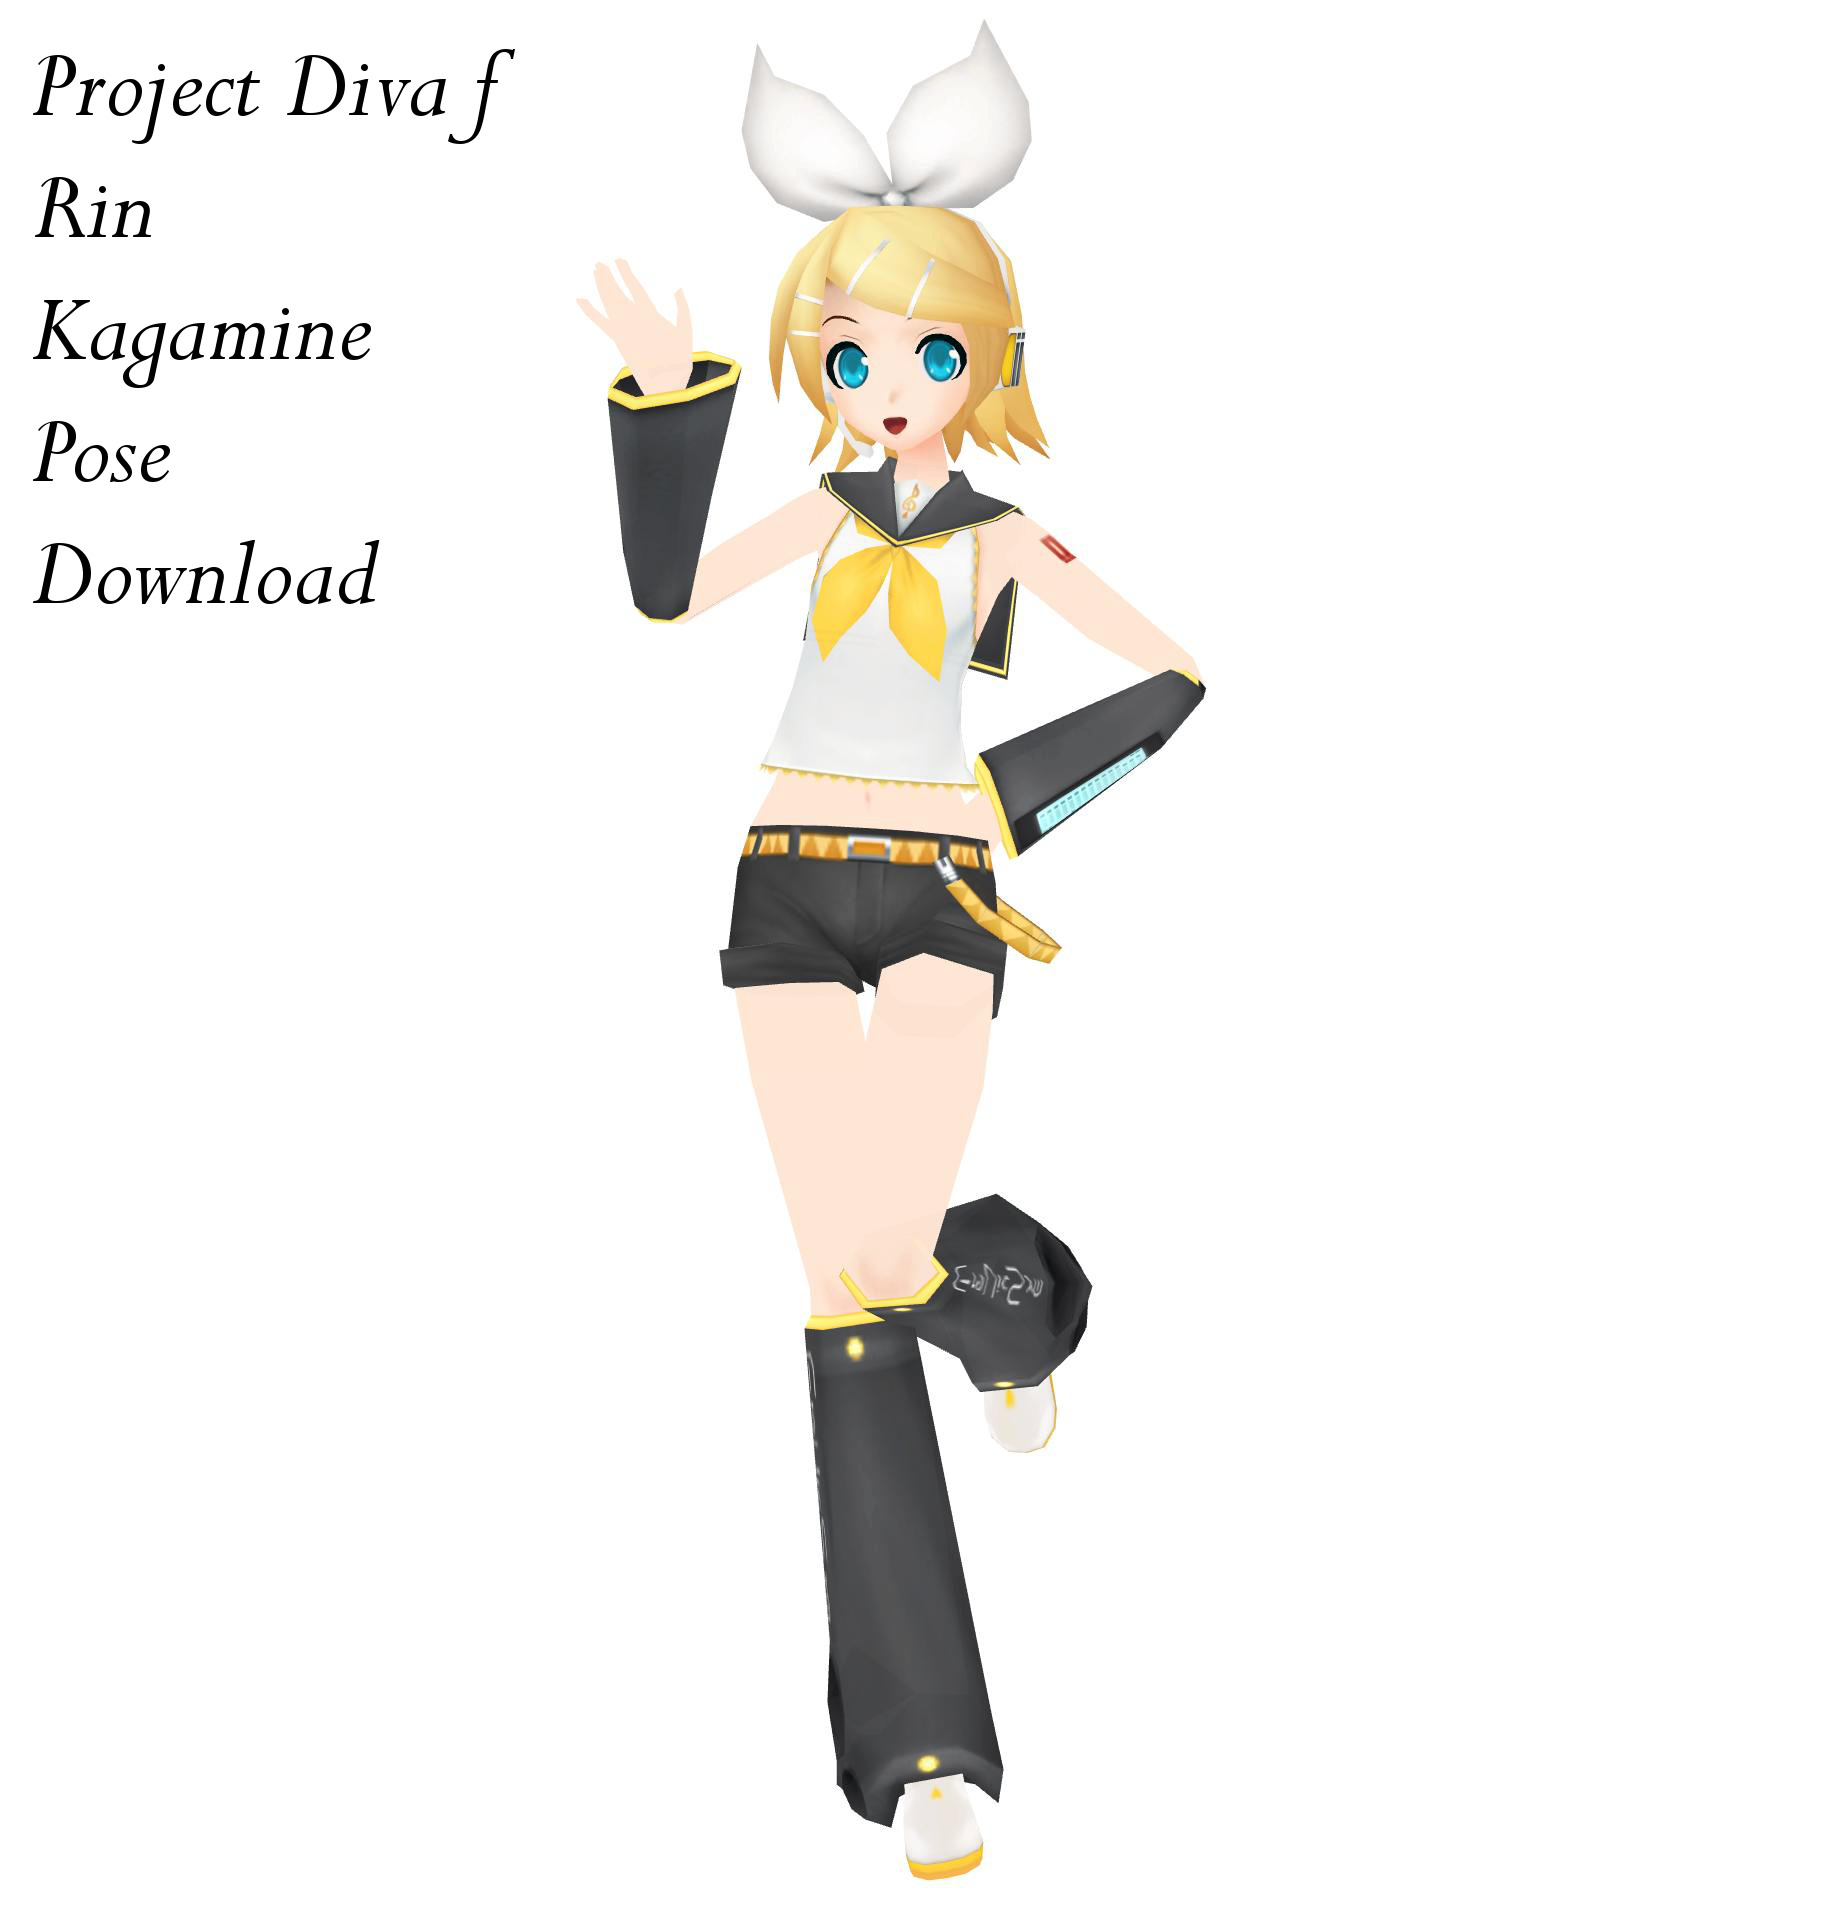 Project diva f rin kagamine pose download by reon046 on deviantart - Kagamine rin project diva ...